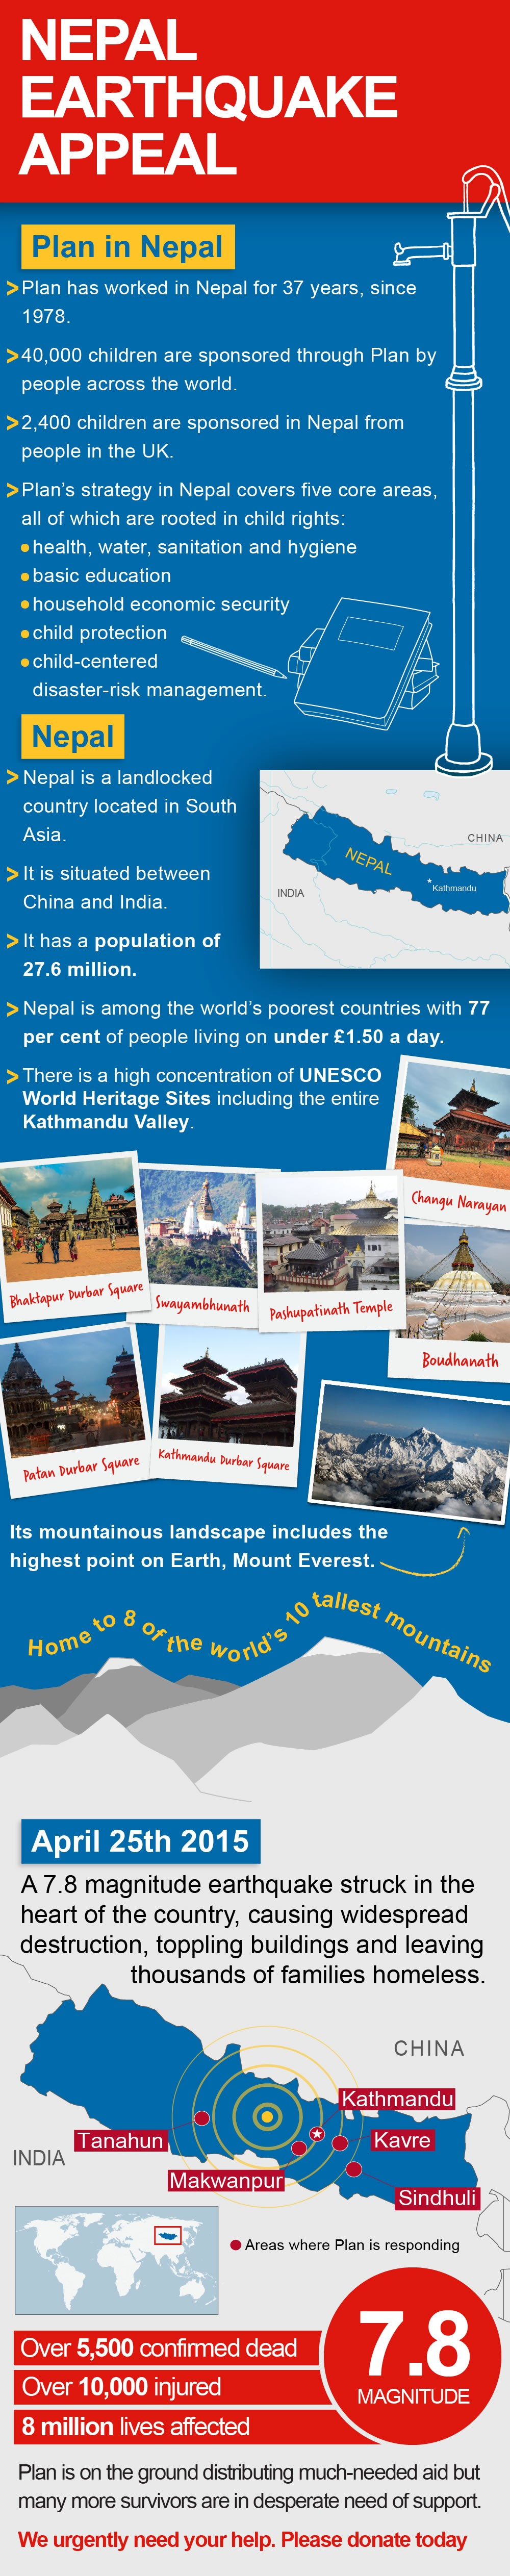 Nepal Earthquake infogrpahic with facts and figures